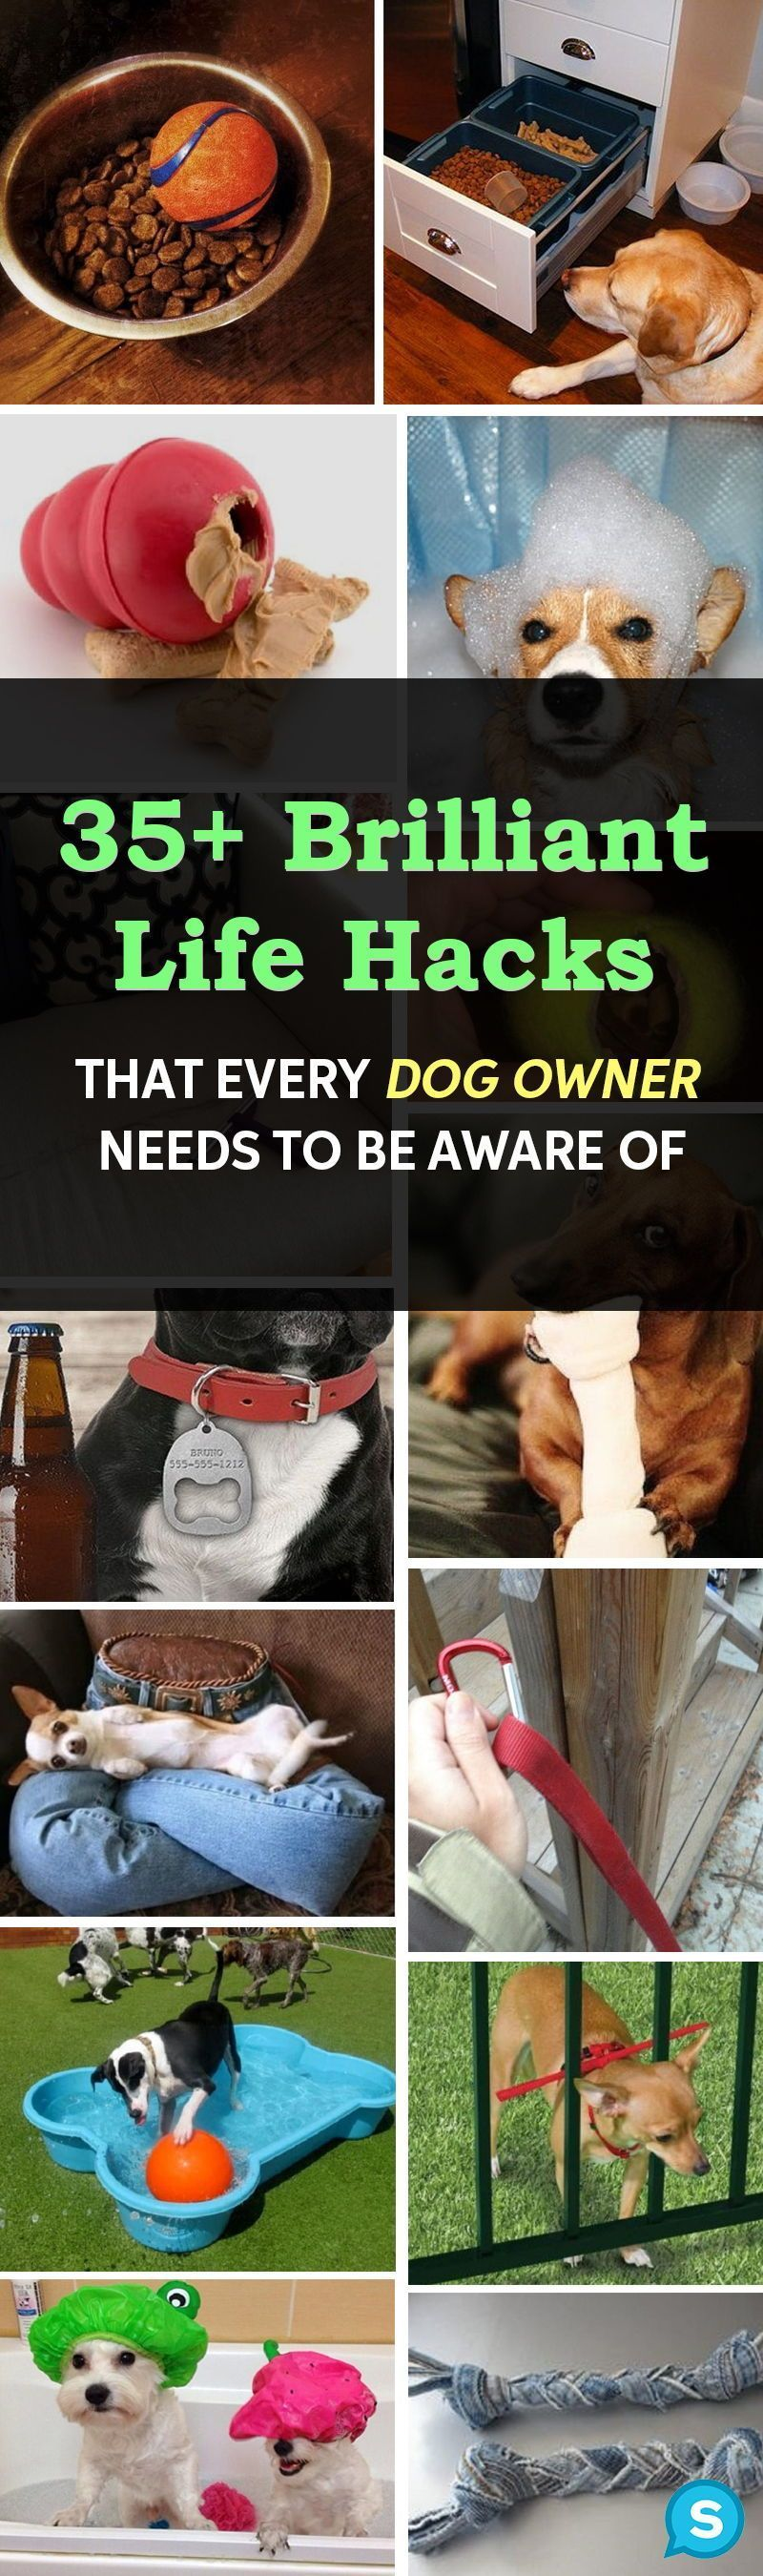 Every dog owner needs to be aware of these genius tips. These dog training tips and tricks will make your life so much easier!  #dogs #pets #animals Spend time training your dog and make your bond stronger. Both you and your dog will be happier when you are both properly trained. doggie | dogs | puppies | dog training | dog breeds | funny dogs | dog food | dog accessories #dogs #doggiemojo #geniusmomtricks Every dog owner needs to be aware of these genius tips. These dog training tips and tricks #geniusmomtricks